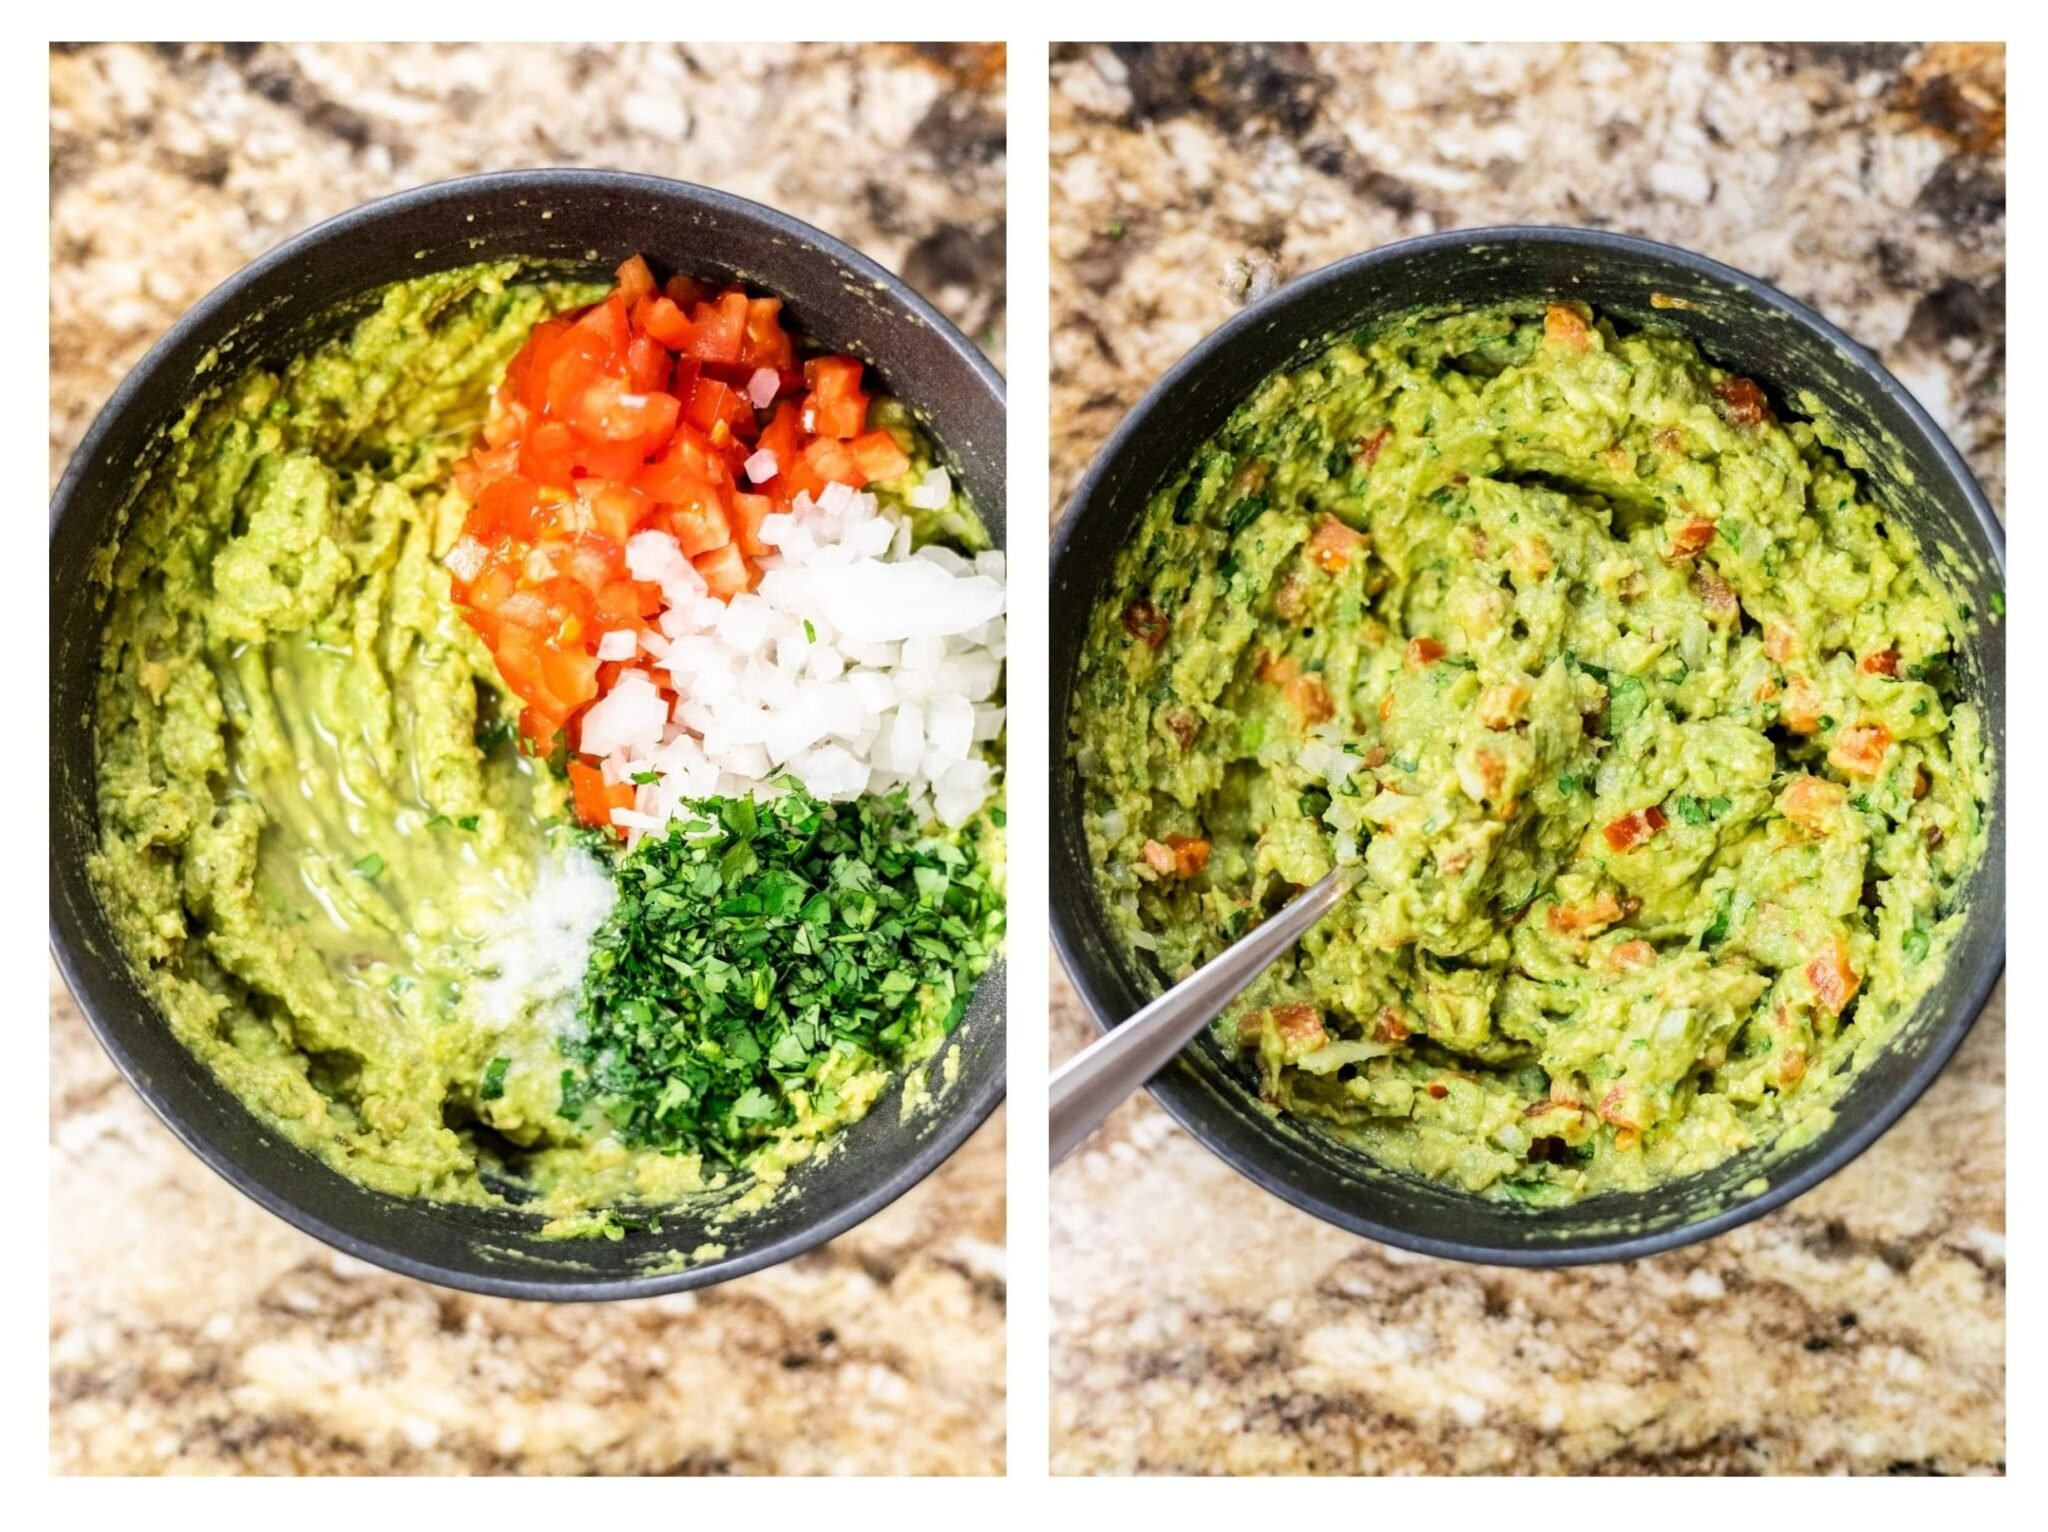 A photo collage of mashed avocado in a bowl with guacamole ingredients piled on top of it and freshly made guacamoke.